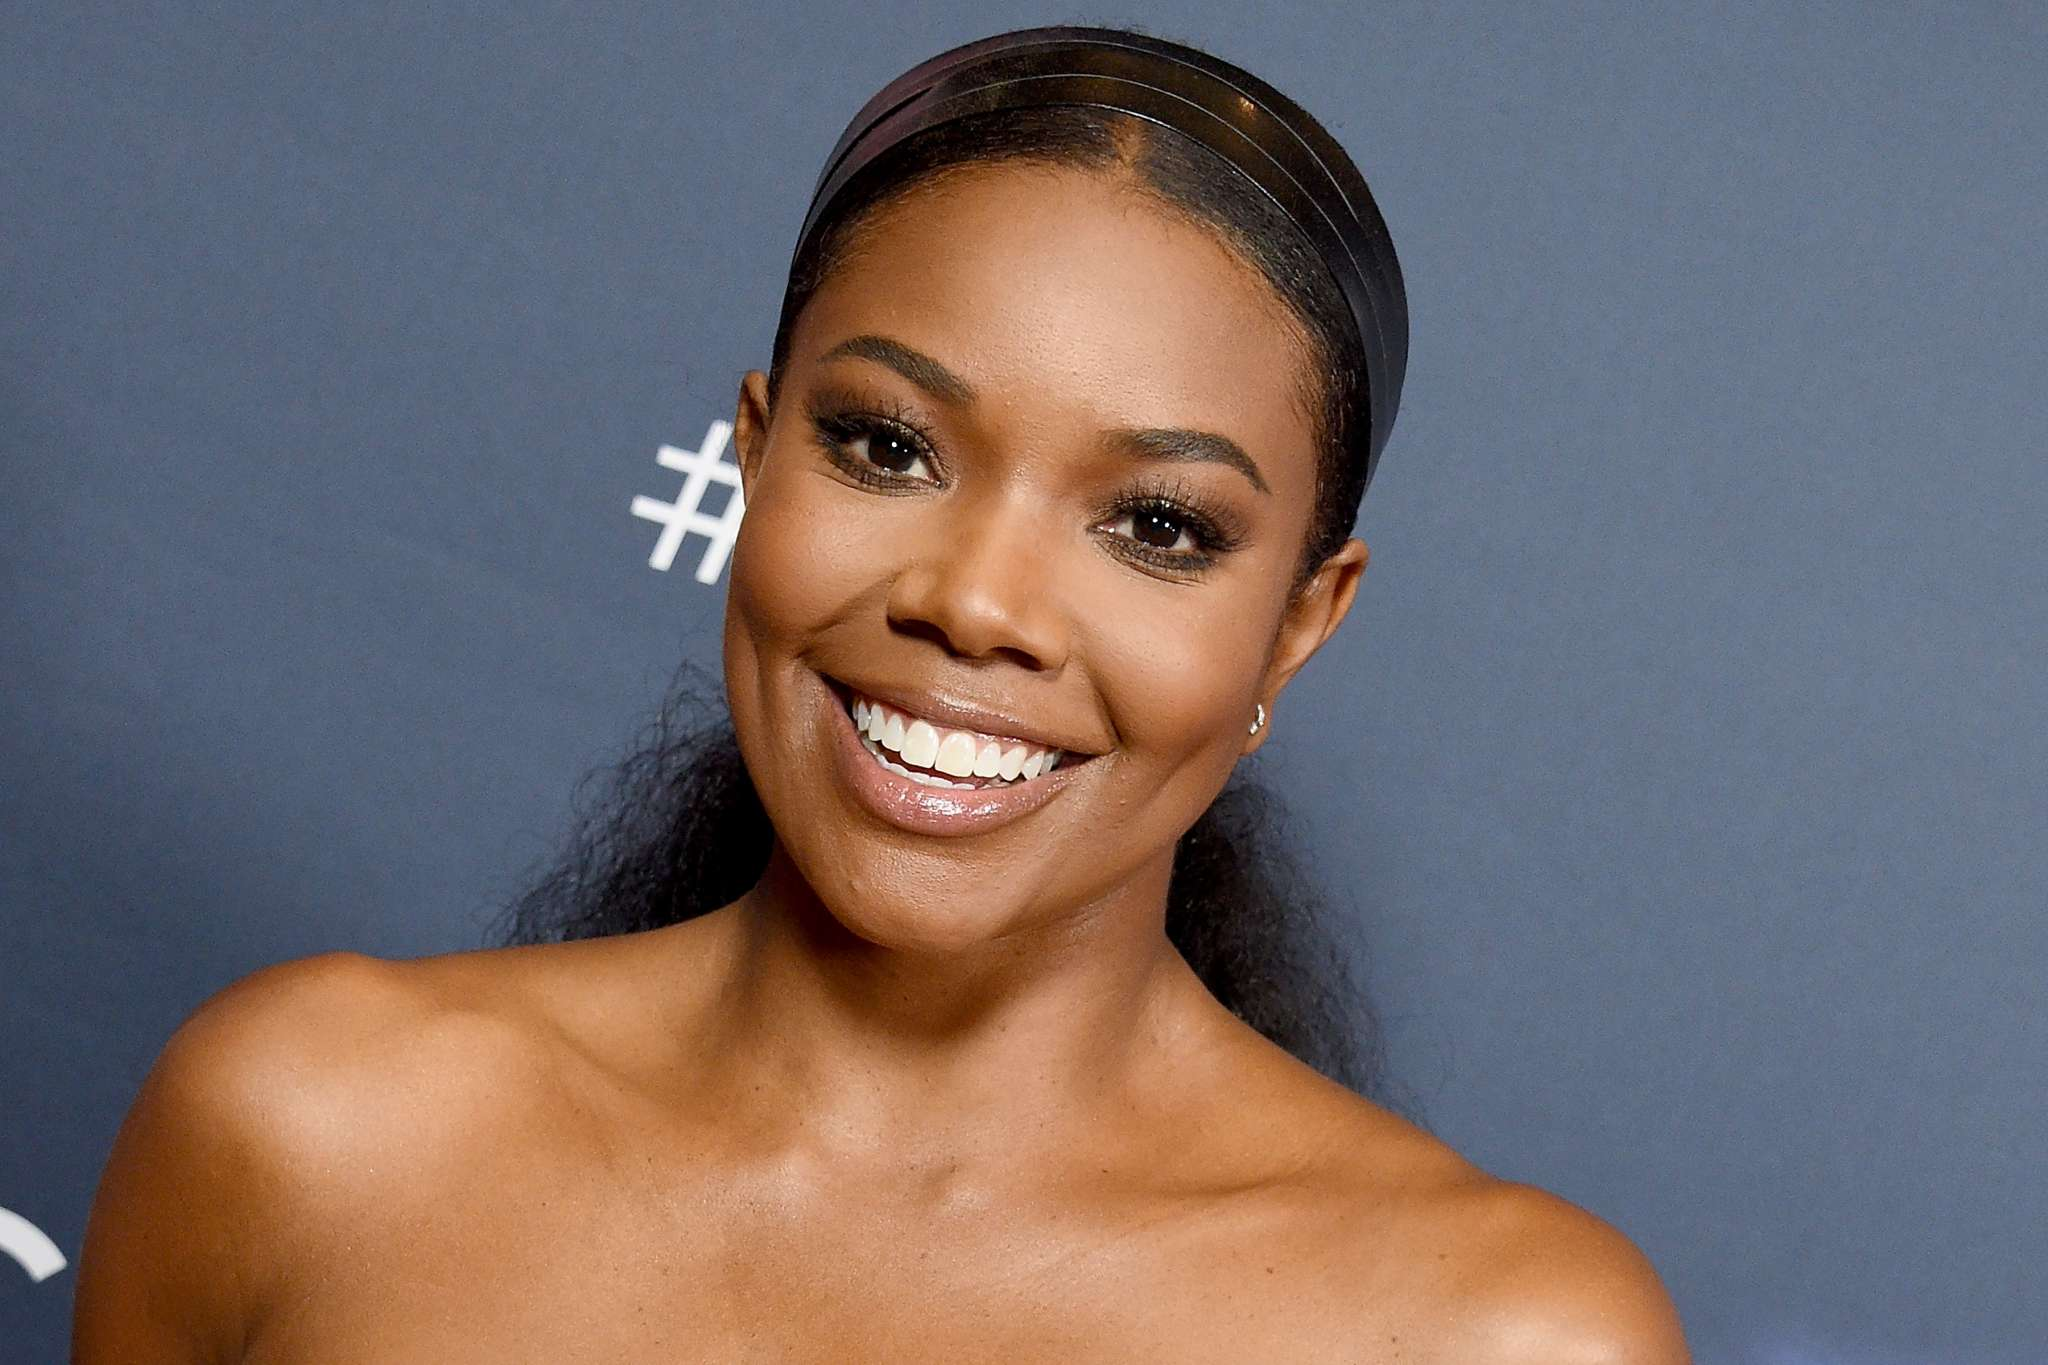 Gabrielle Union Praises A Blossoming Author – Check Her Out Here